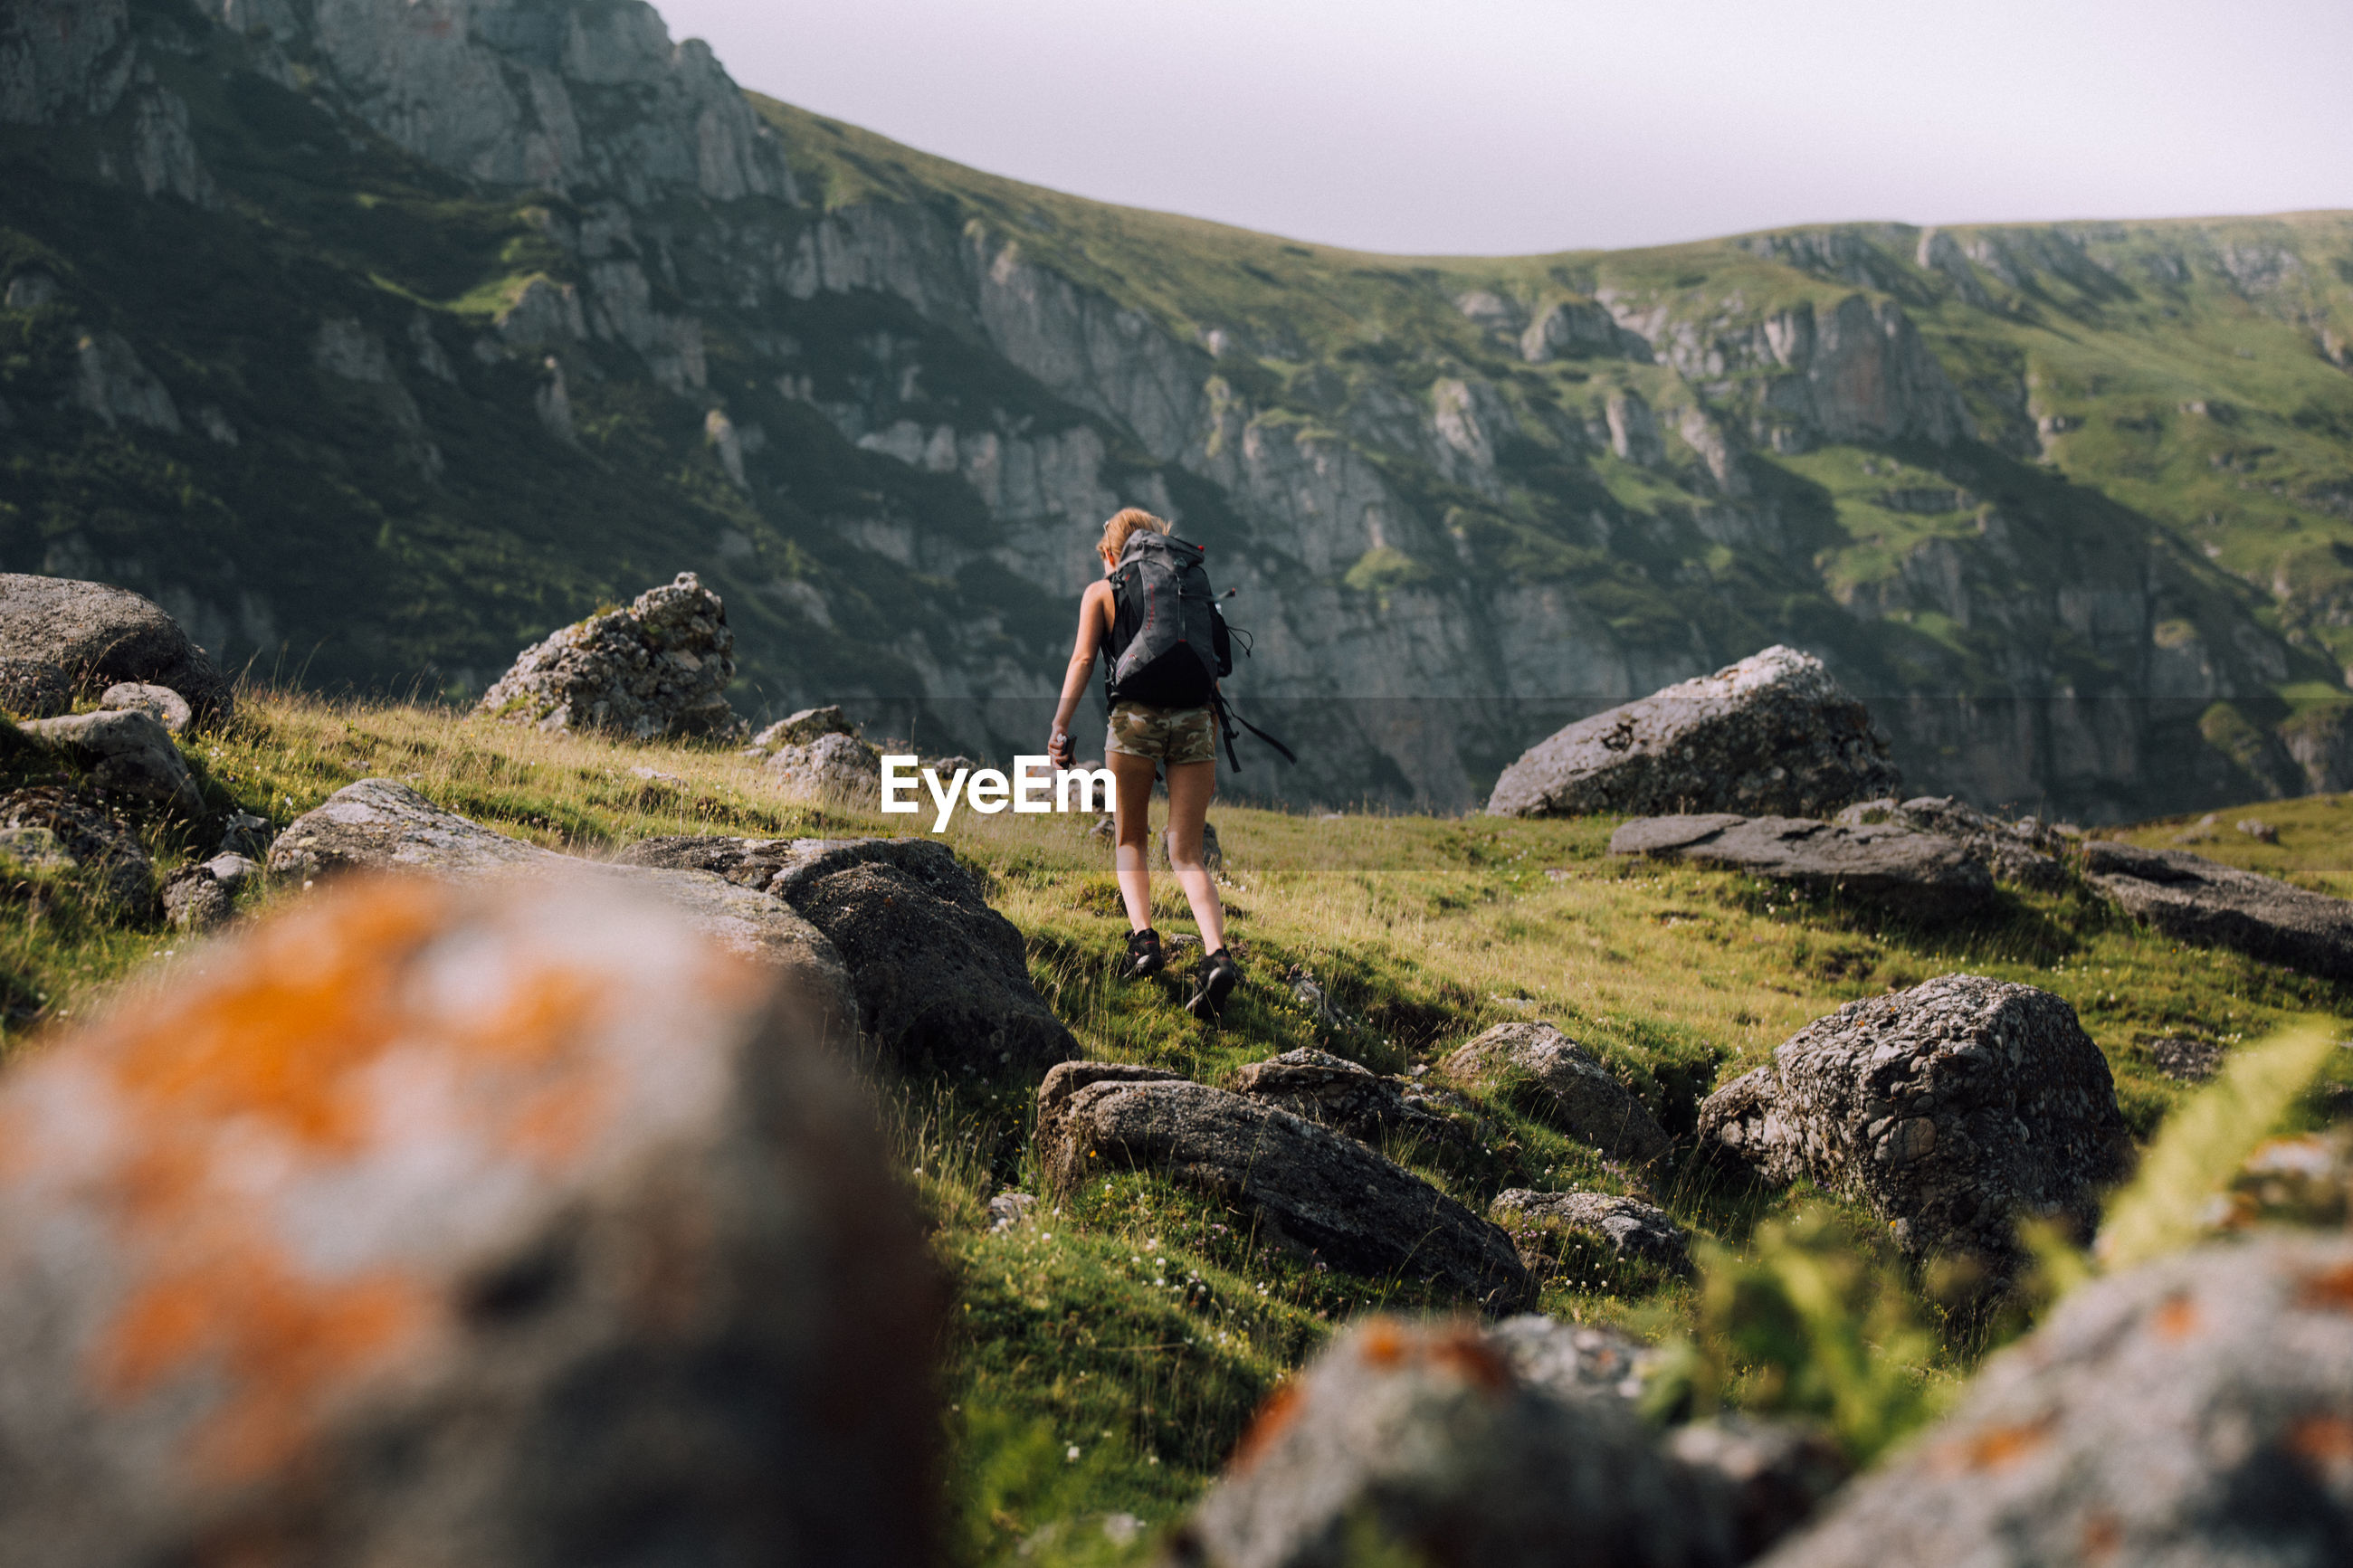 Low angle view of female hiker with backpack walking on mountain